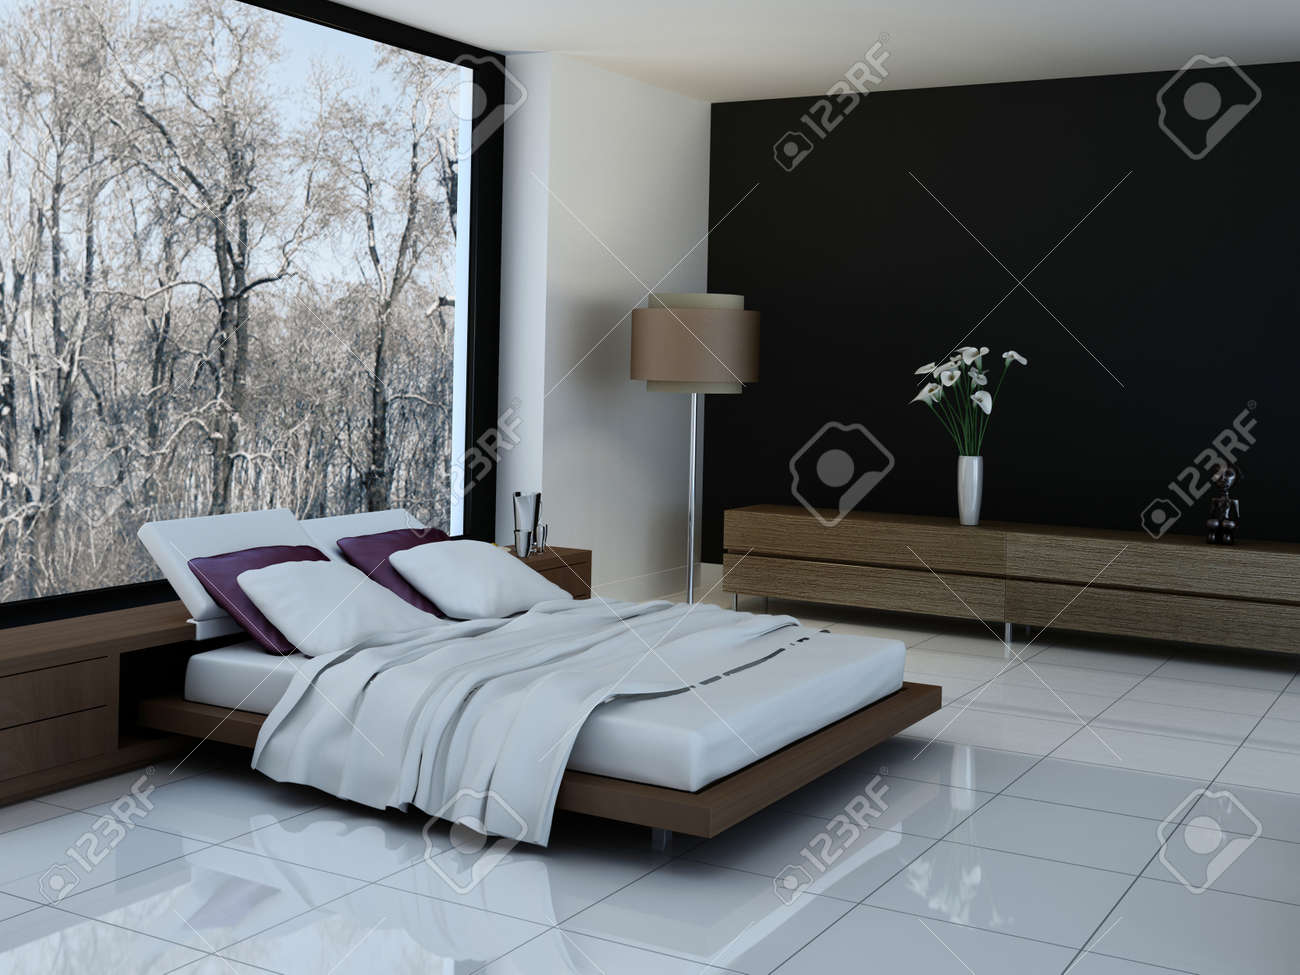 Ultramodern Bedroom Interior With Double Bed Against Panorama ...